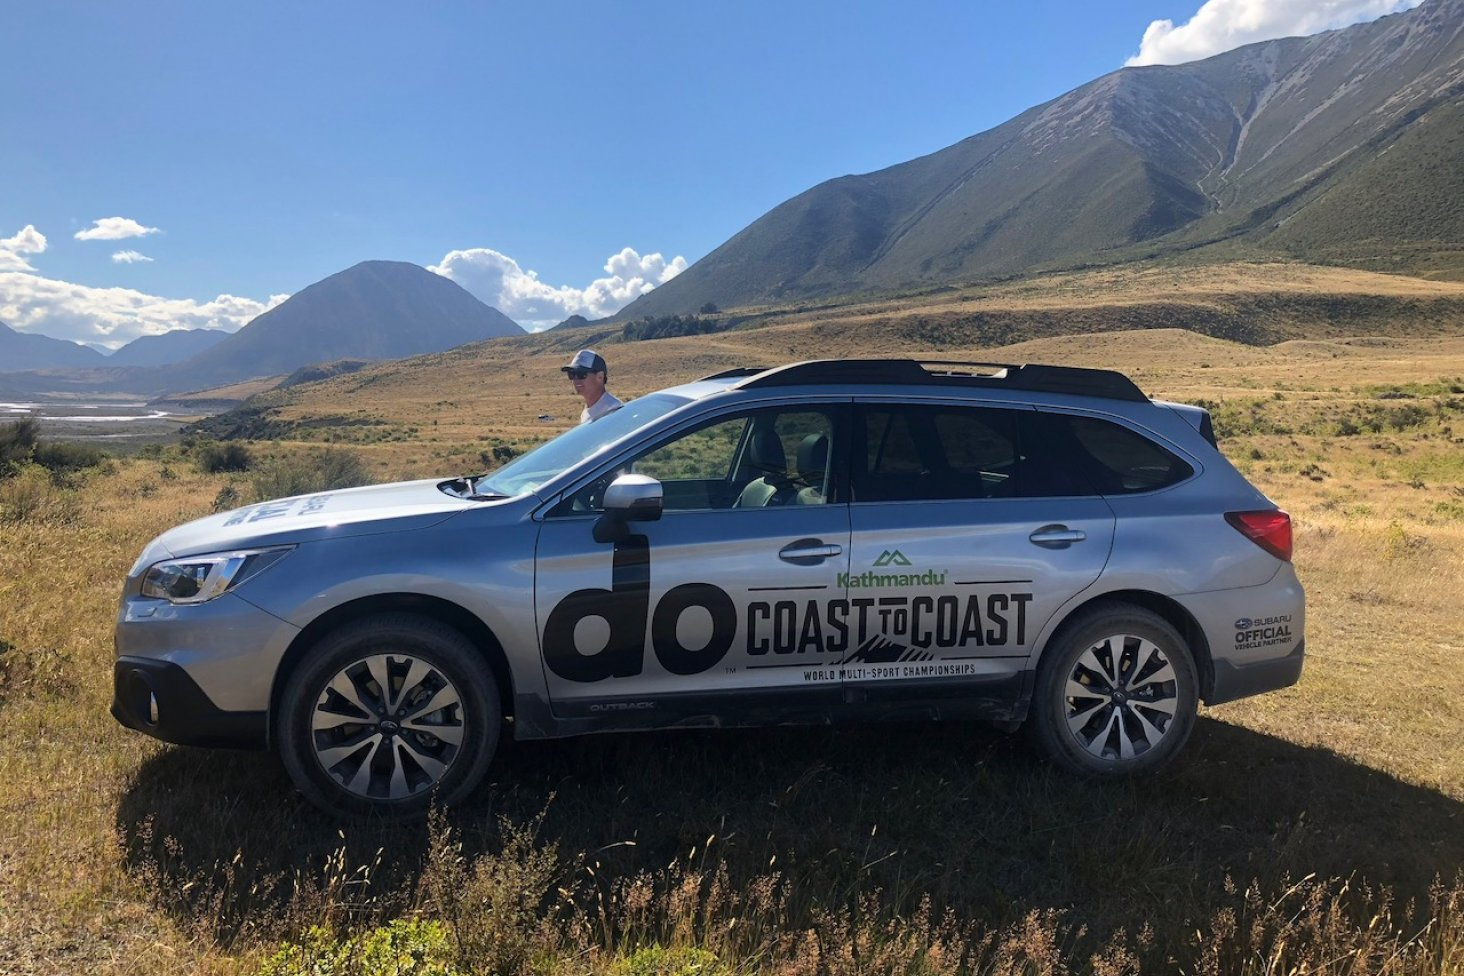 Subaru is the official vehicle supplier to the Kathmandu Coast to Coast.